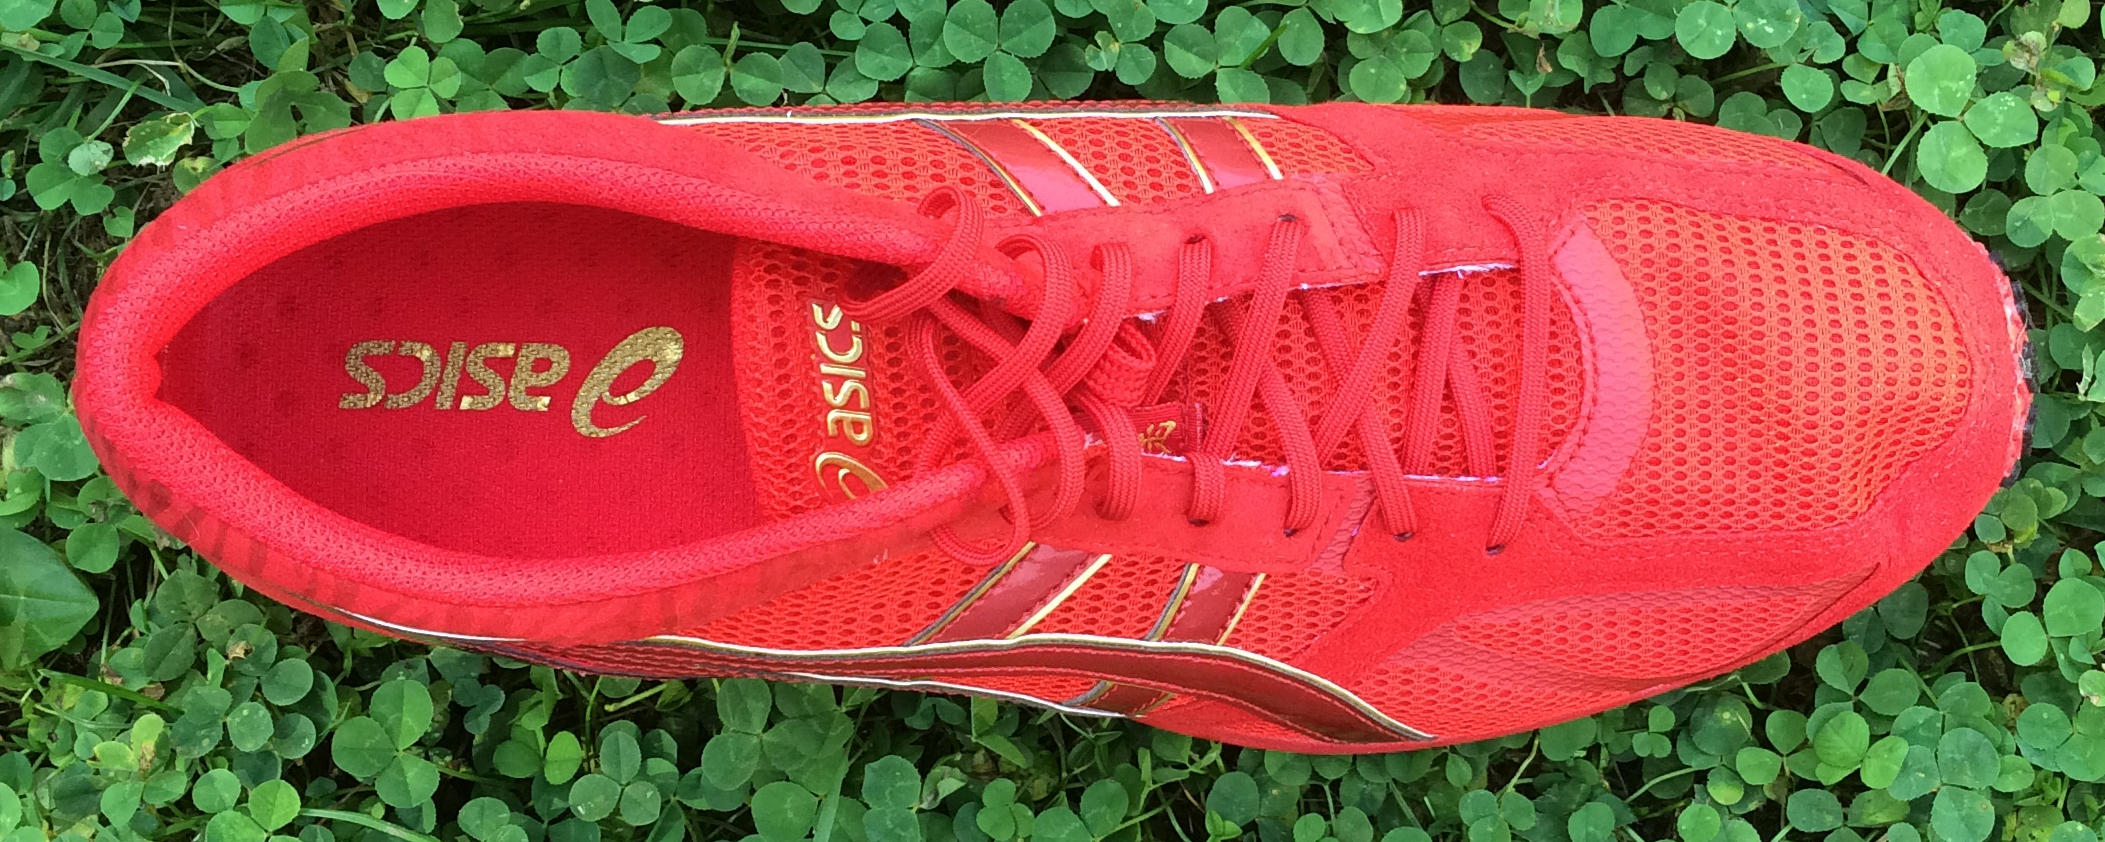 Best Asics Cushioned Running Shoes